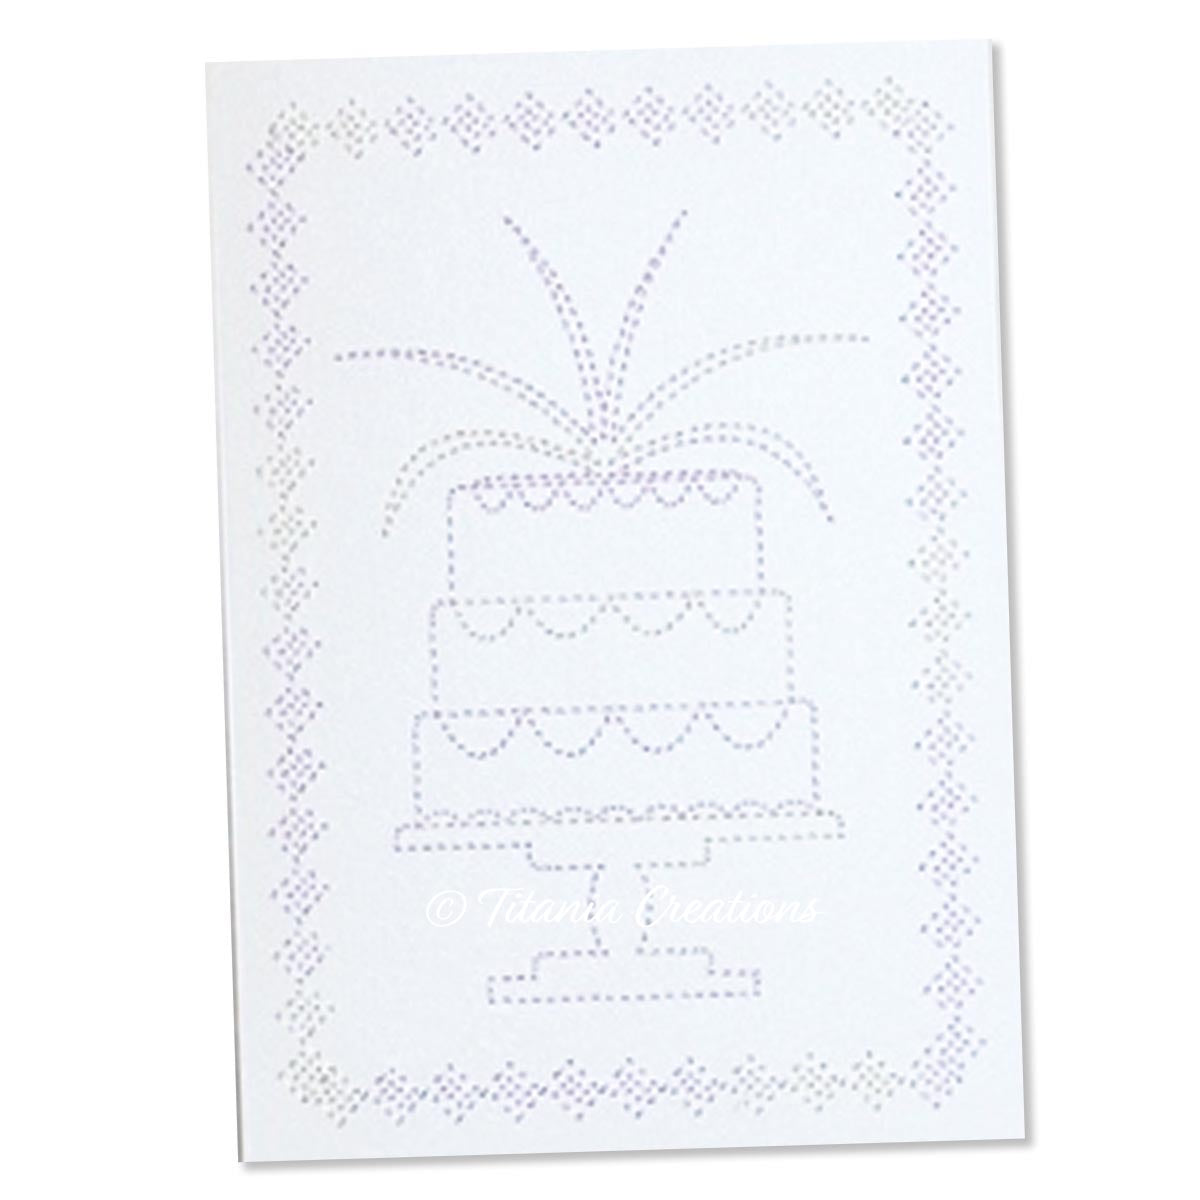 Celebration Cake Card Stock Design 5x7